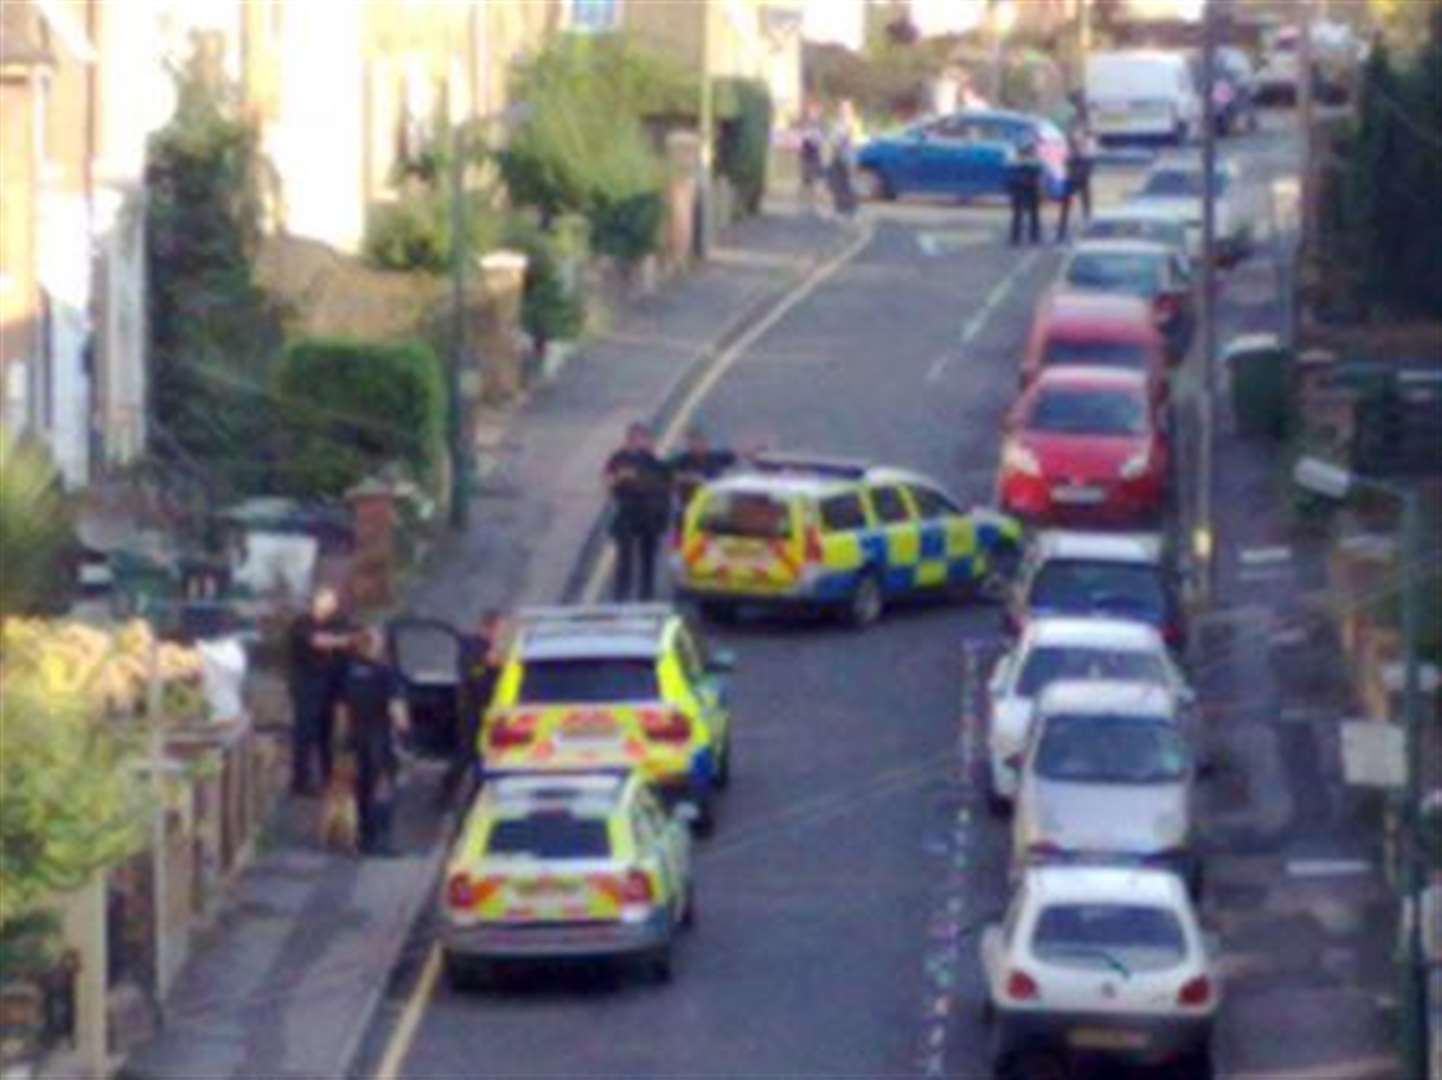 Armed police seal off road